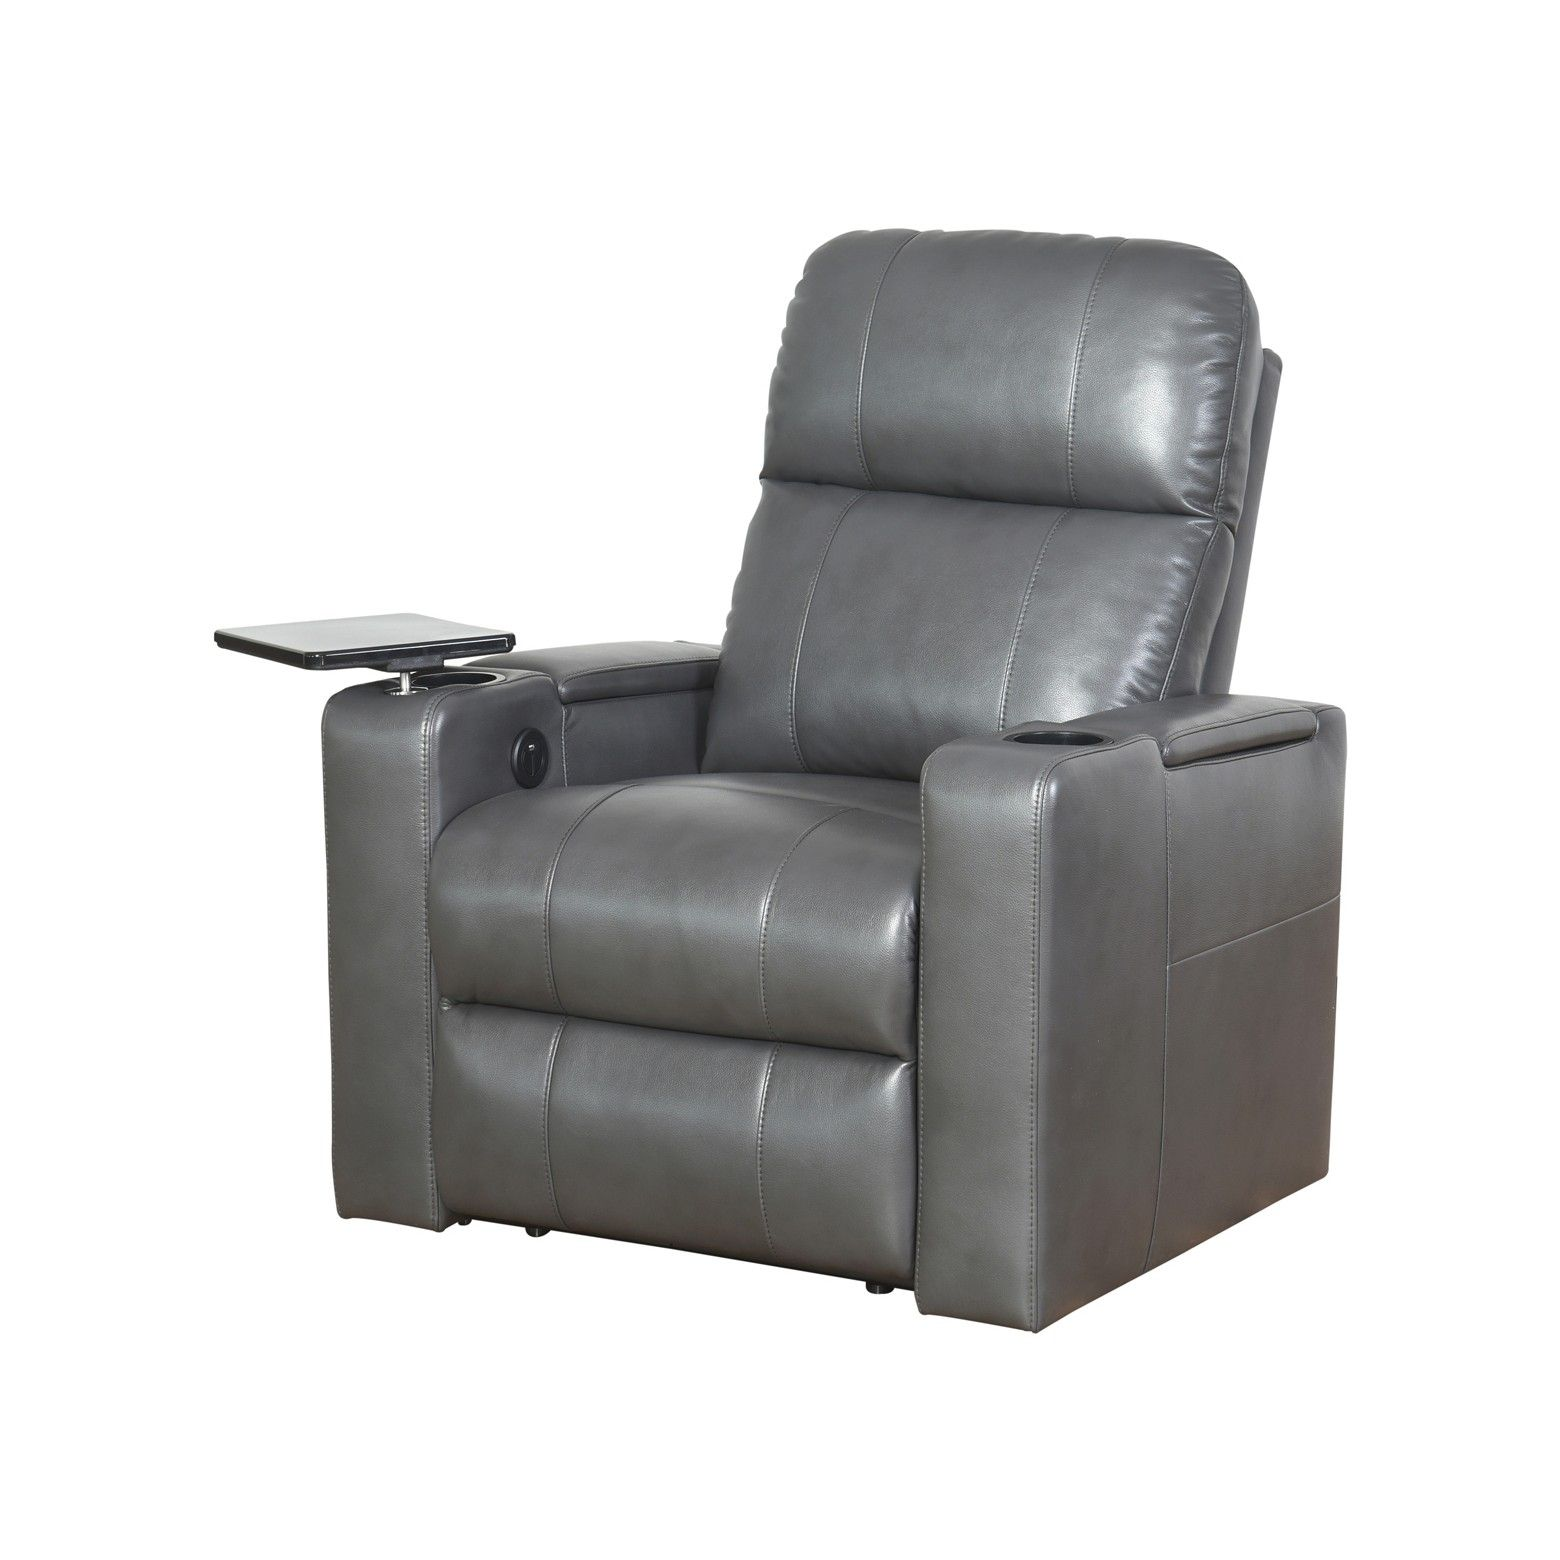 Groovy Abbyson Living Ronnie Leather Theatre Recliner Furniture Gmtry Best Dining Table And Chair Ideas Images Gmtryco